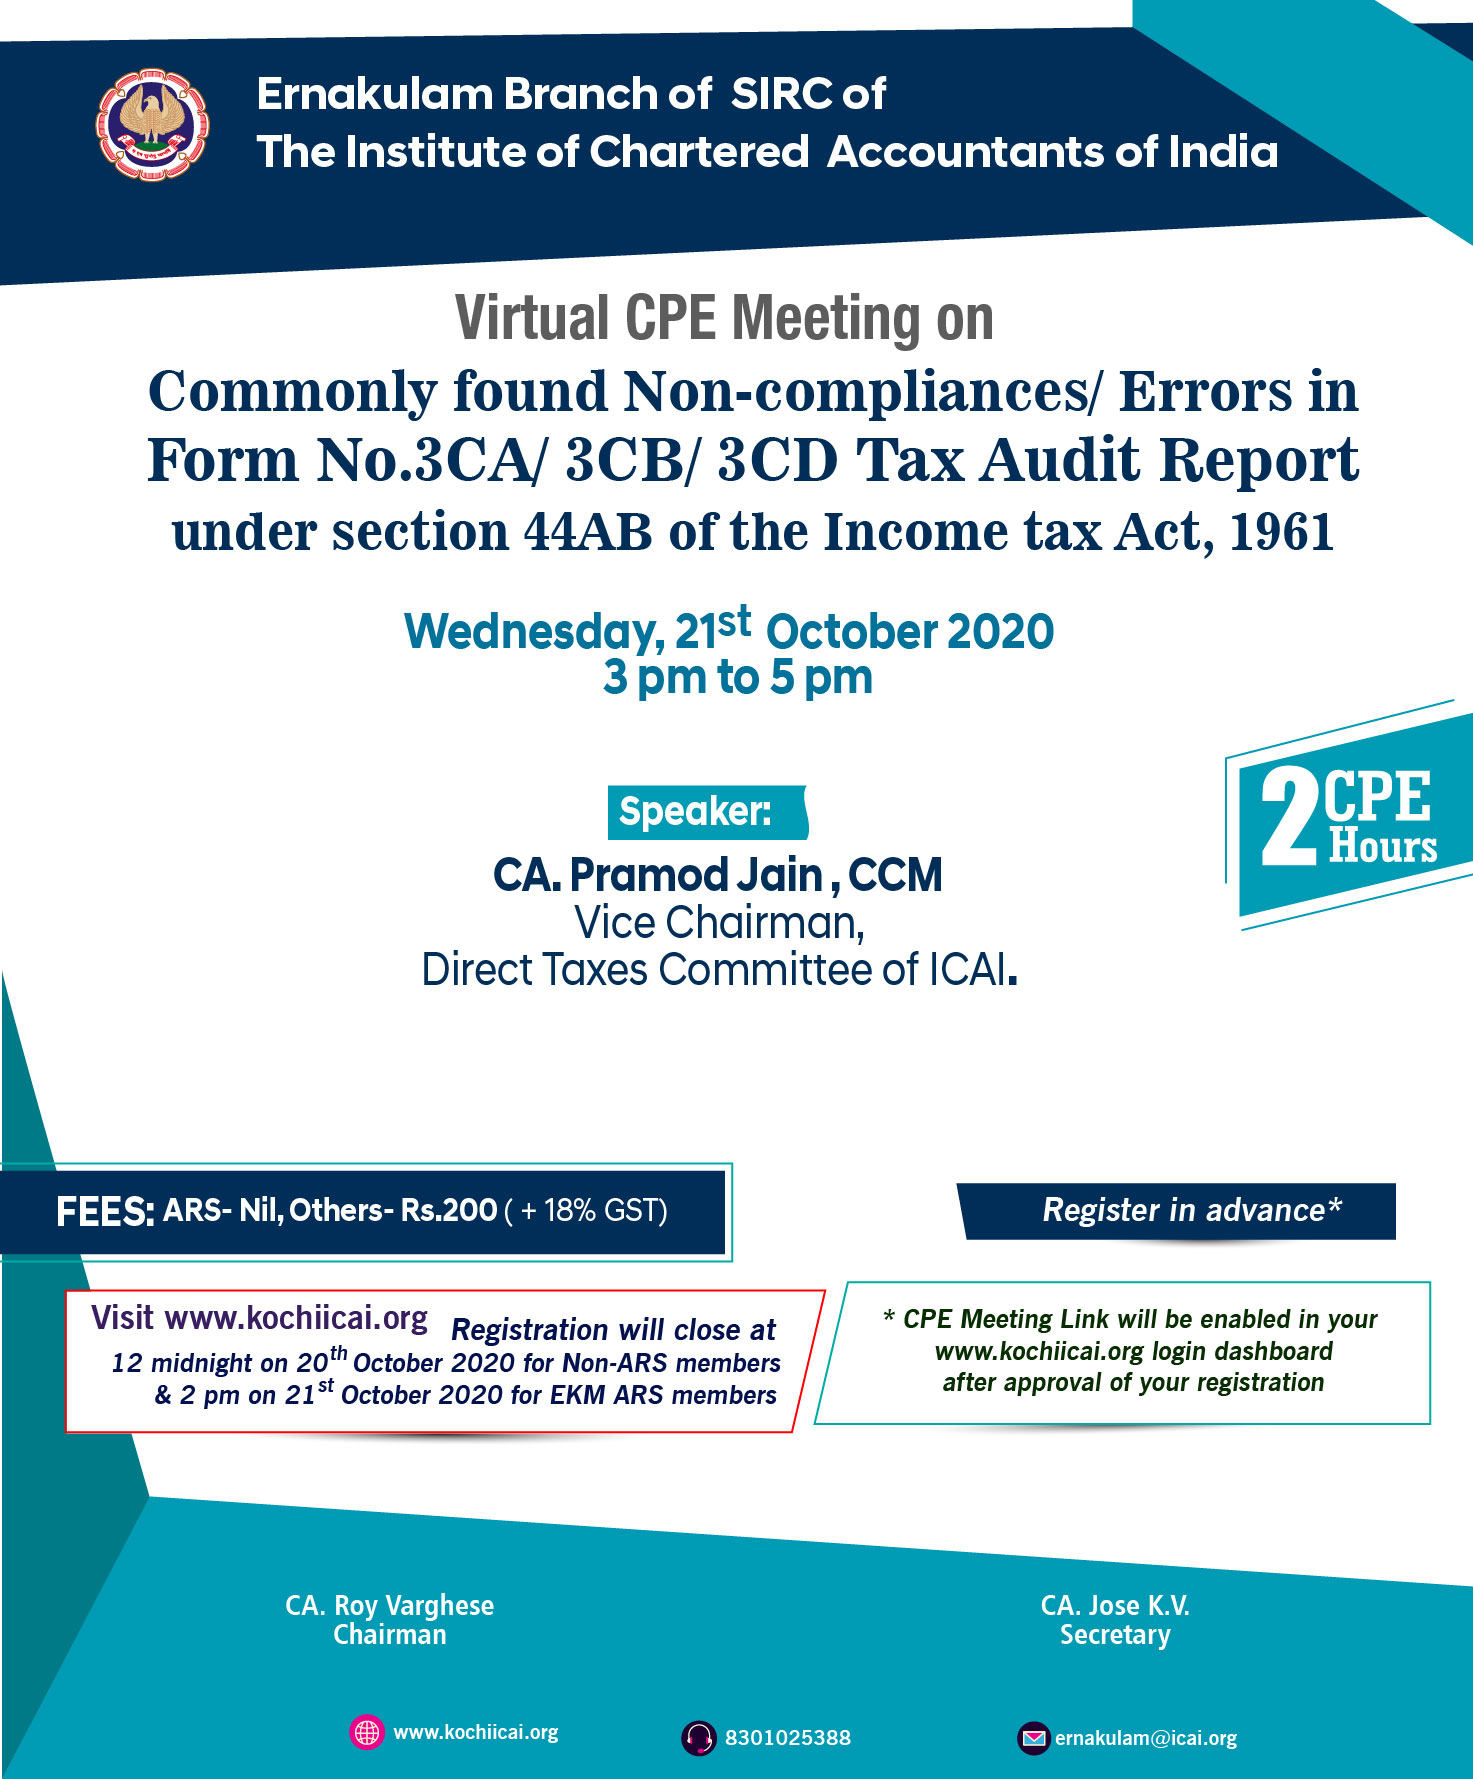 Virtual CPE Meeting on Commonly found Non-compliances/ Errors in Form No.3CA/ 3CB/ 3CD Tax Audit Report under section 44AB of the Income tax Act, 1961